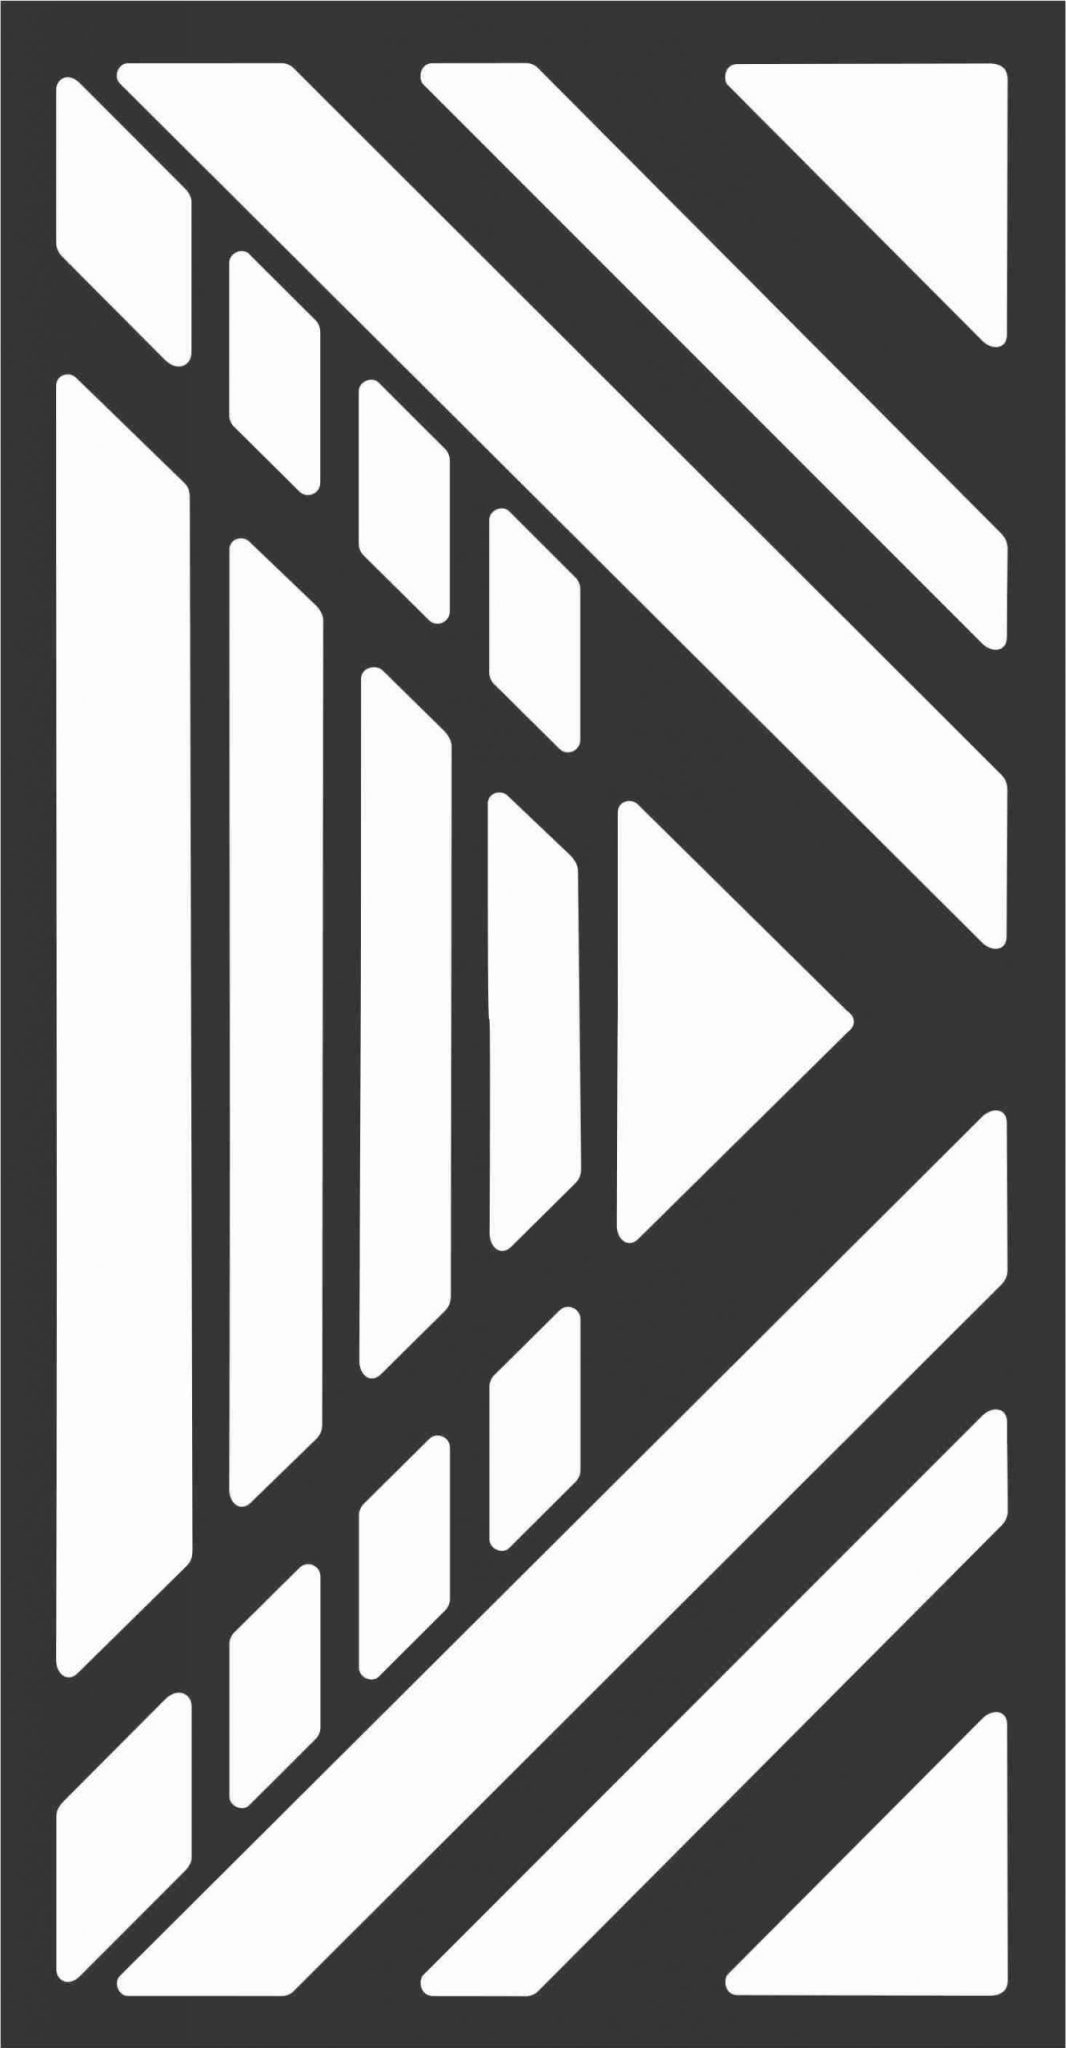 Decorative Screen Patterns For Laser Cutting 193 Free DXF File